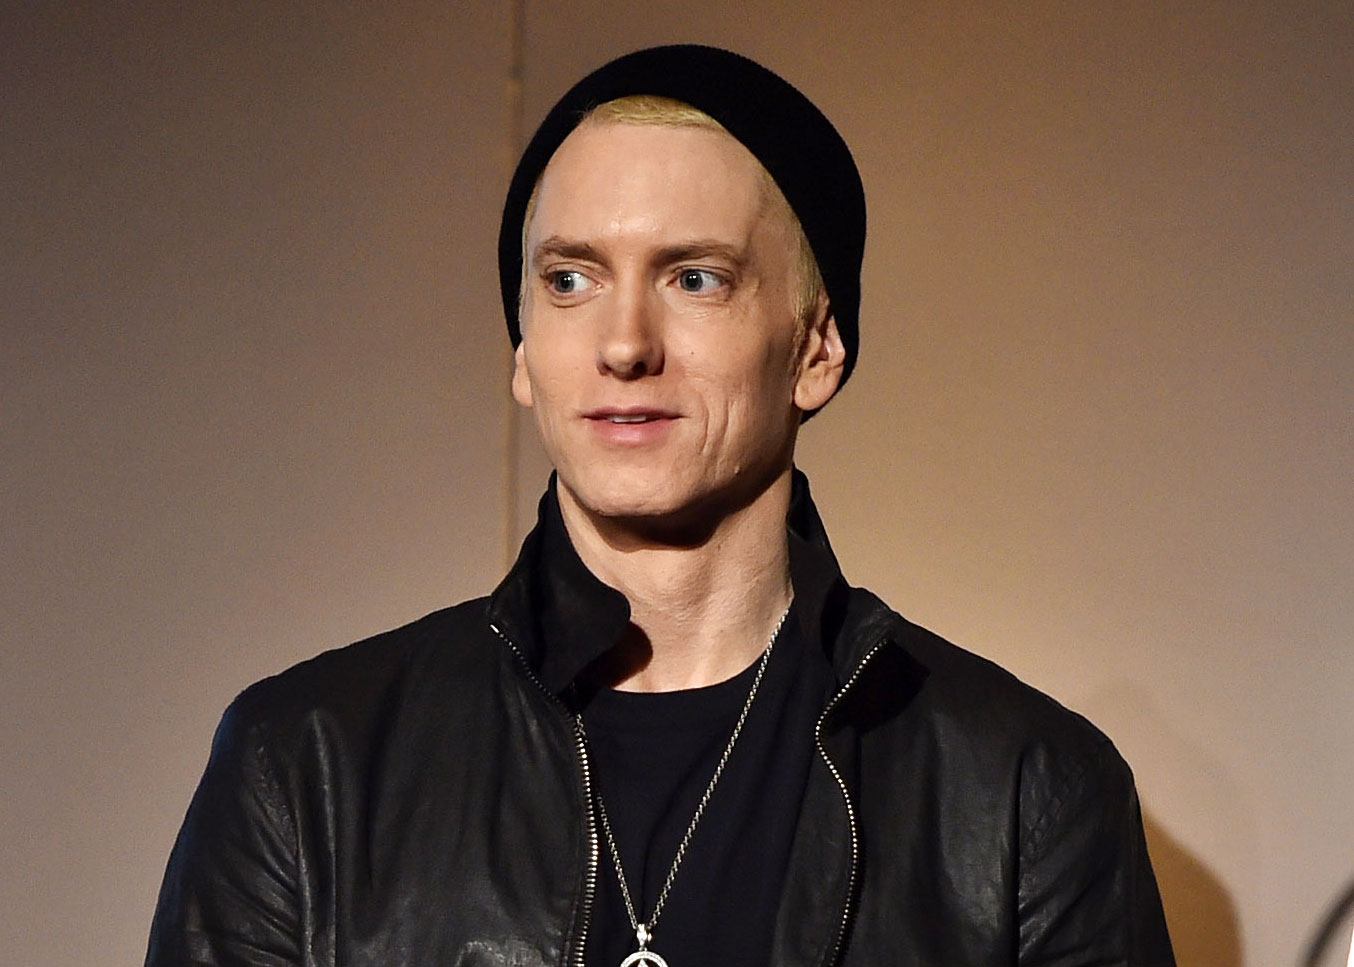 Eminem Called Out Donald Trump in a Freestyle Rap and Twitter Loved It